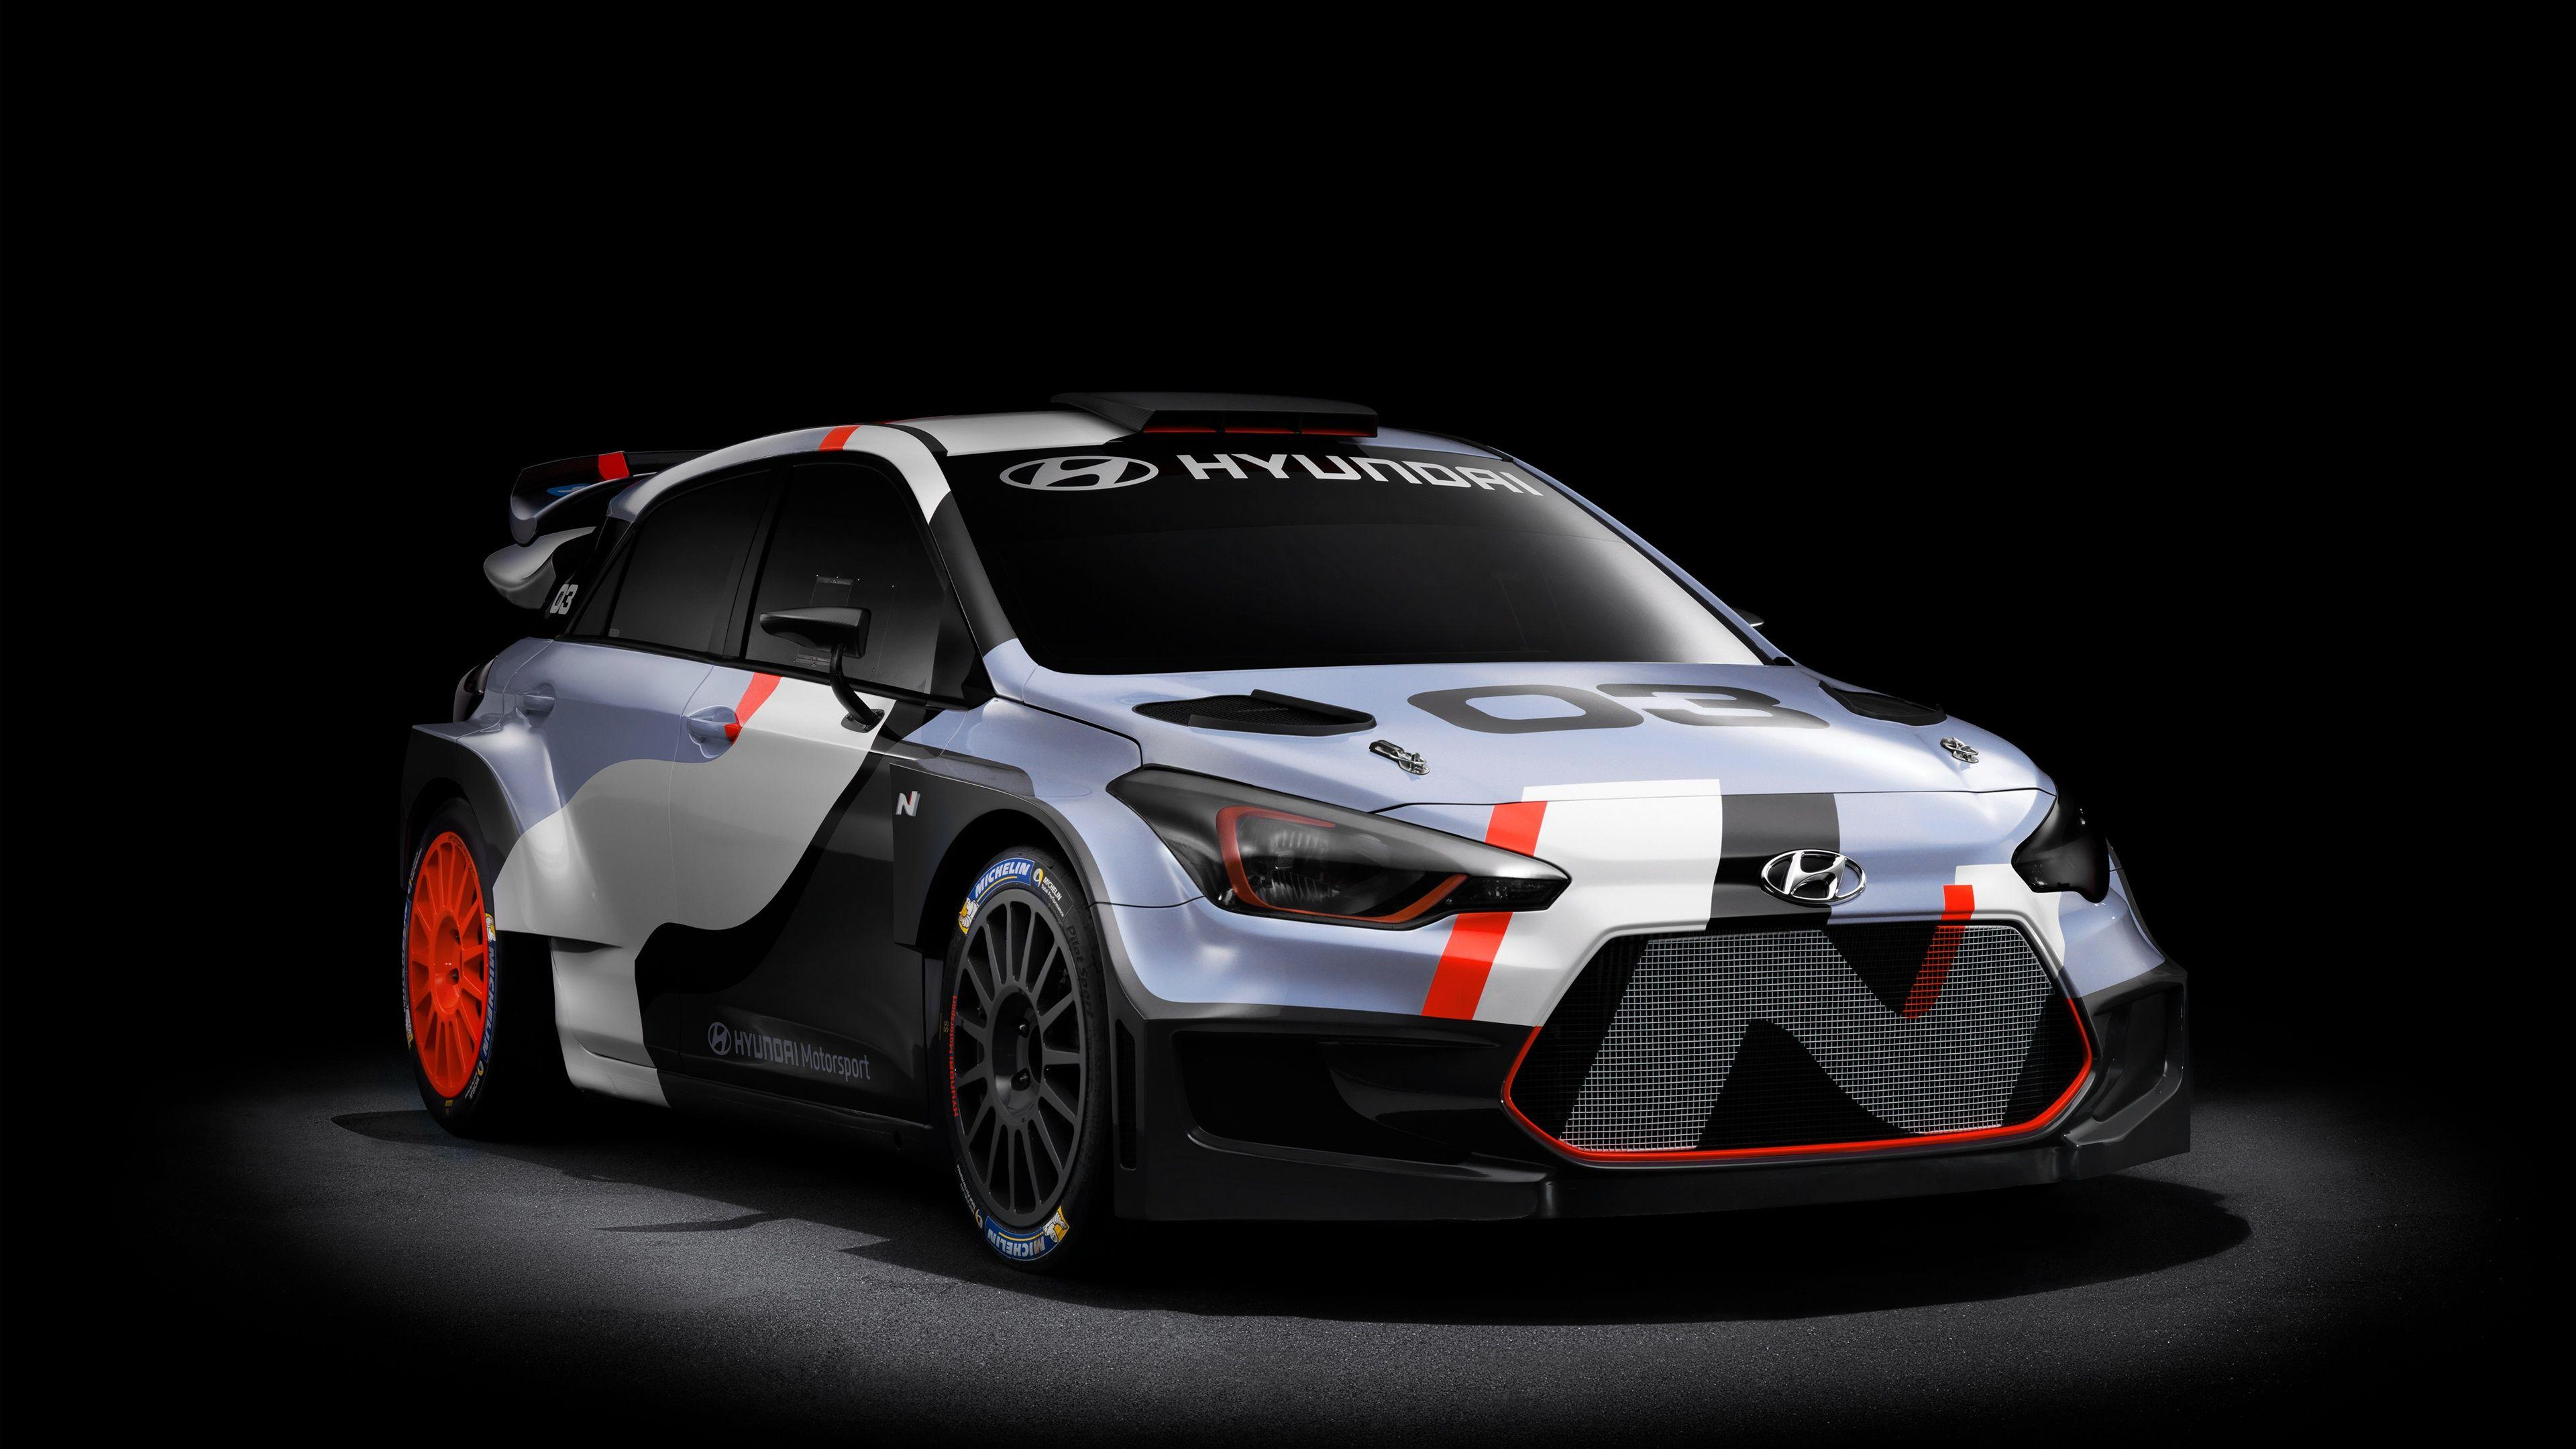 2015 Hyundai i20 WRC Concept Wallpapers